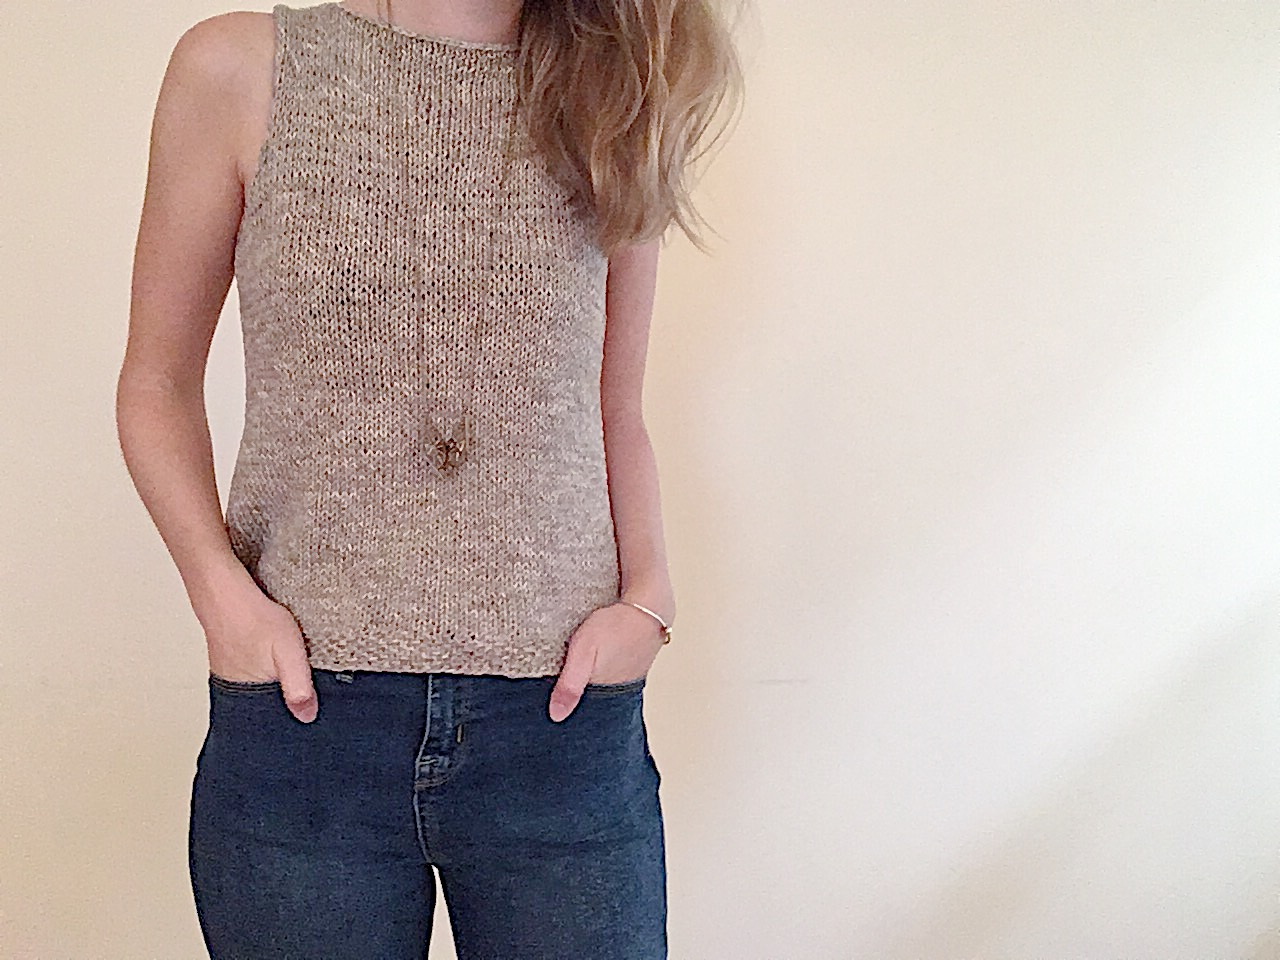 Knitted Tank Top Patterns Knitted Tank Tops Free Patterns Toffee Art